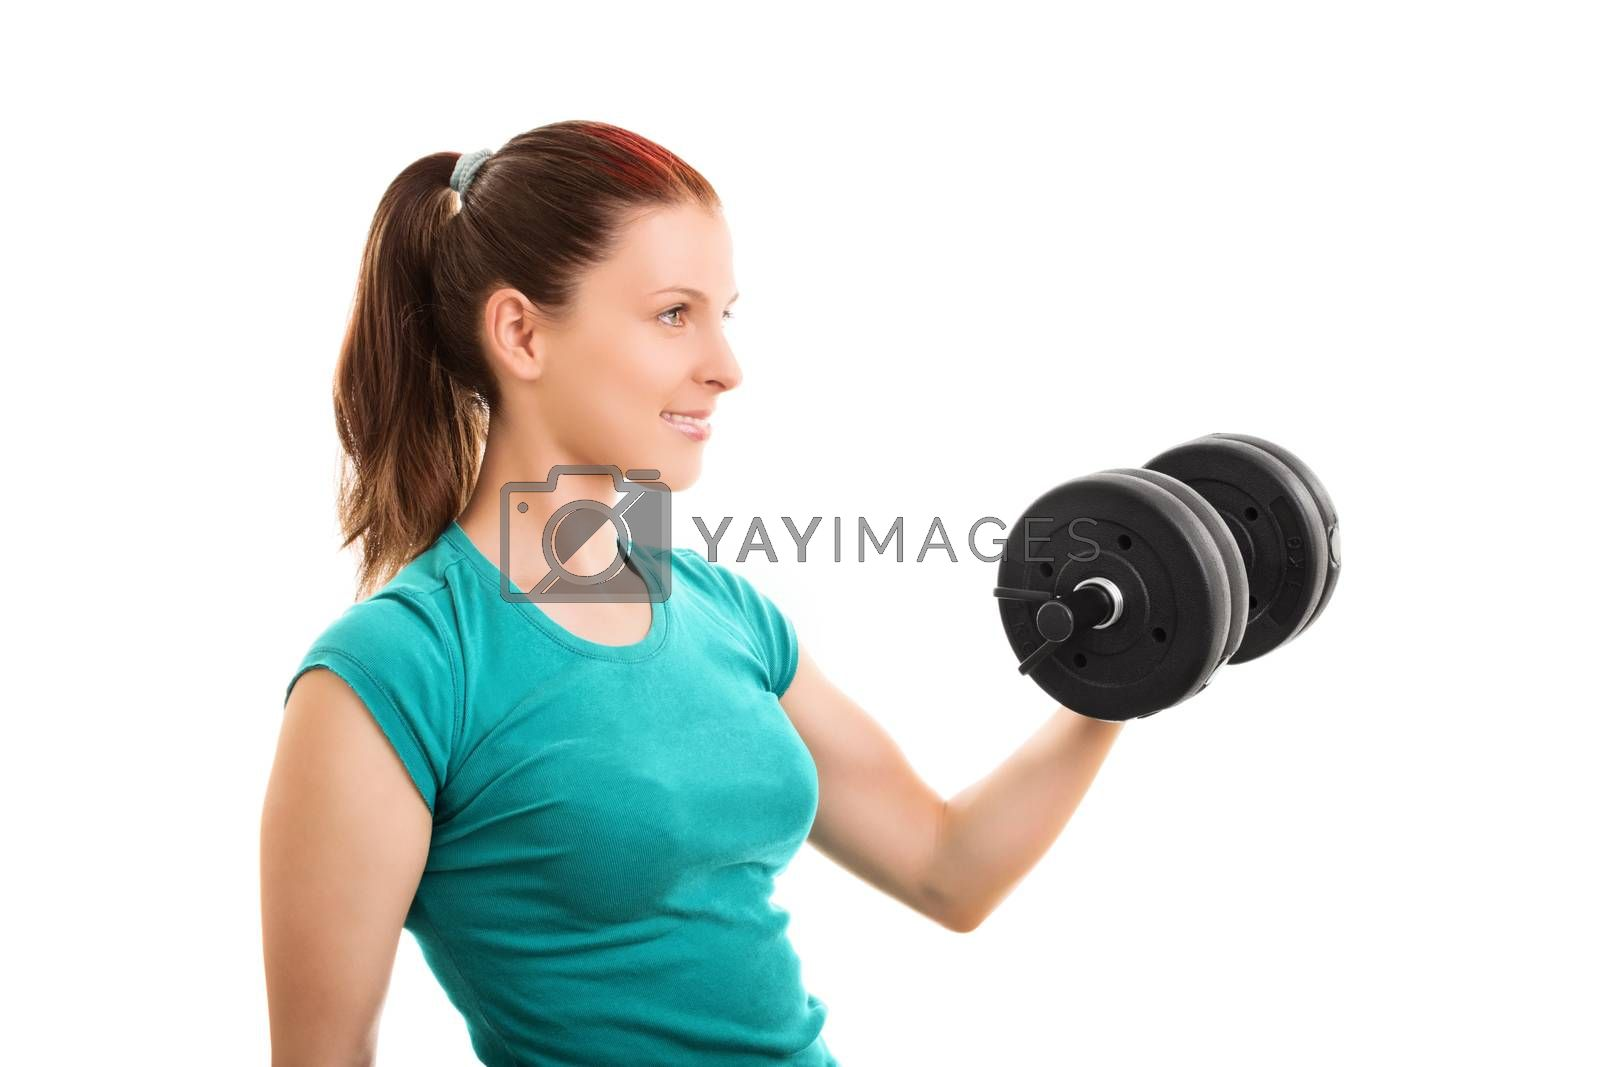 A portrait shot of a beautiful fit girl smiling and lifting a dumbbell, isolated on white background.